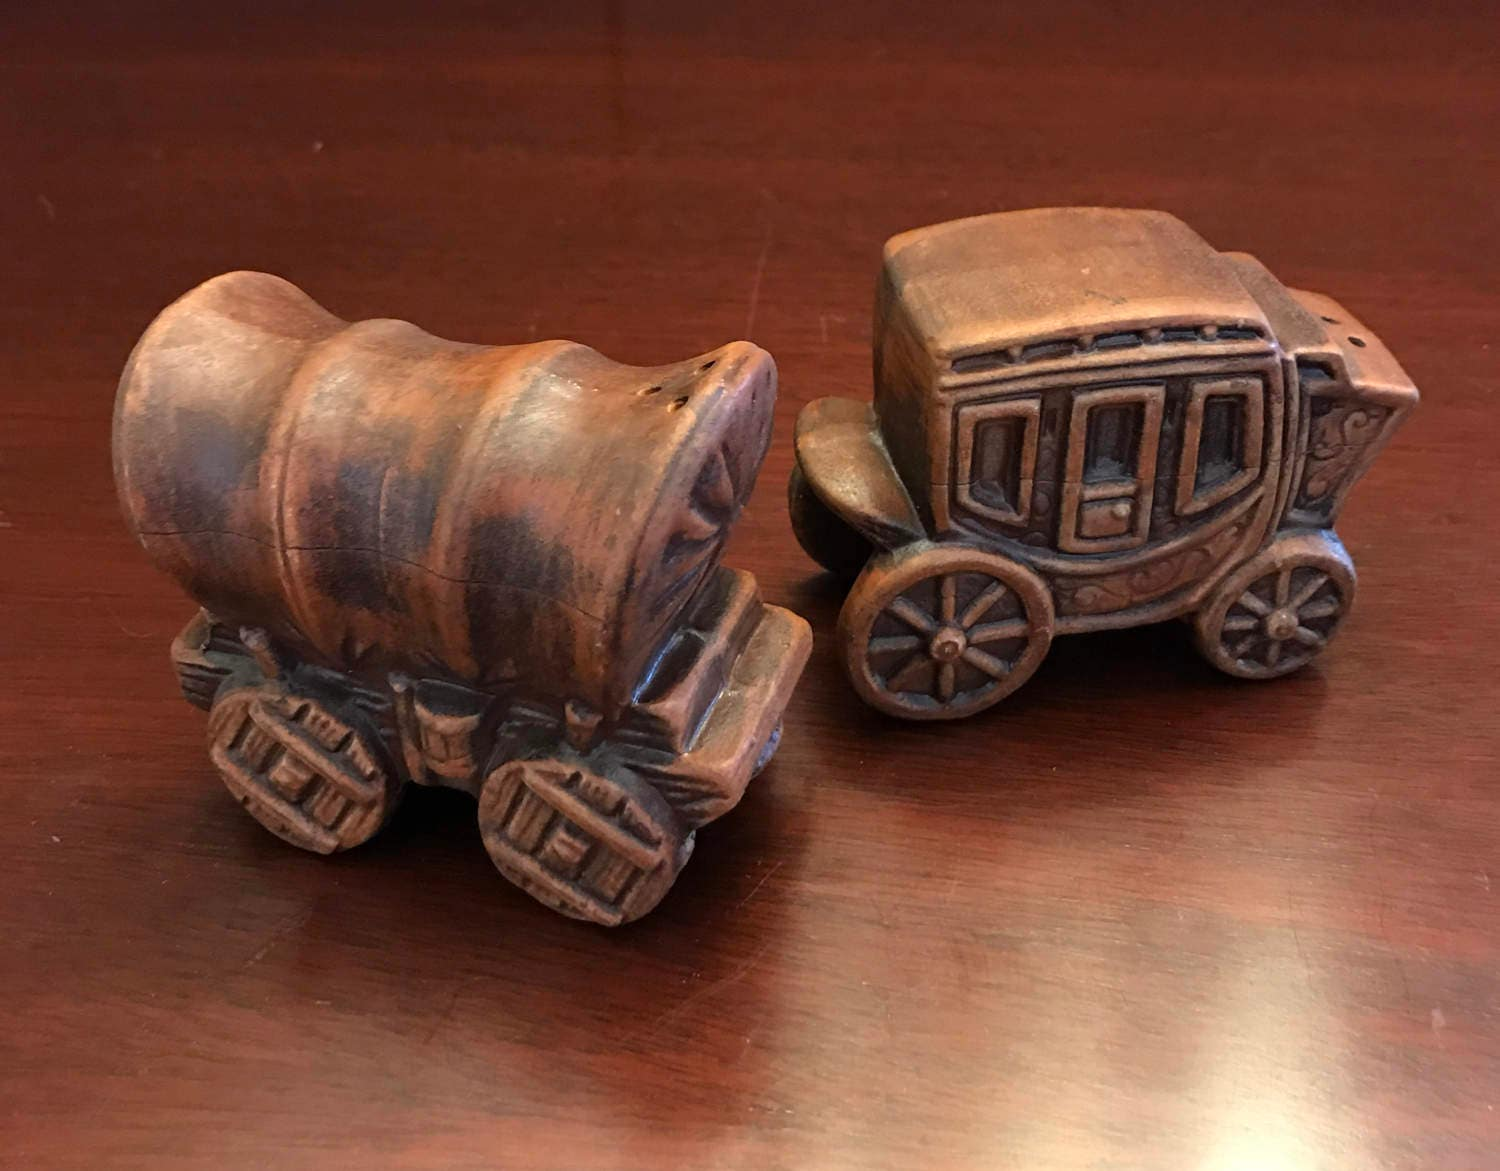 Vintage Stagecoach Covered Wagon Salt Pepper Shakers Ceramic Salt Pepper Western Decor Collectible Salt And Pepper Set Rustic Farmhouse